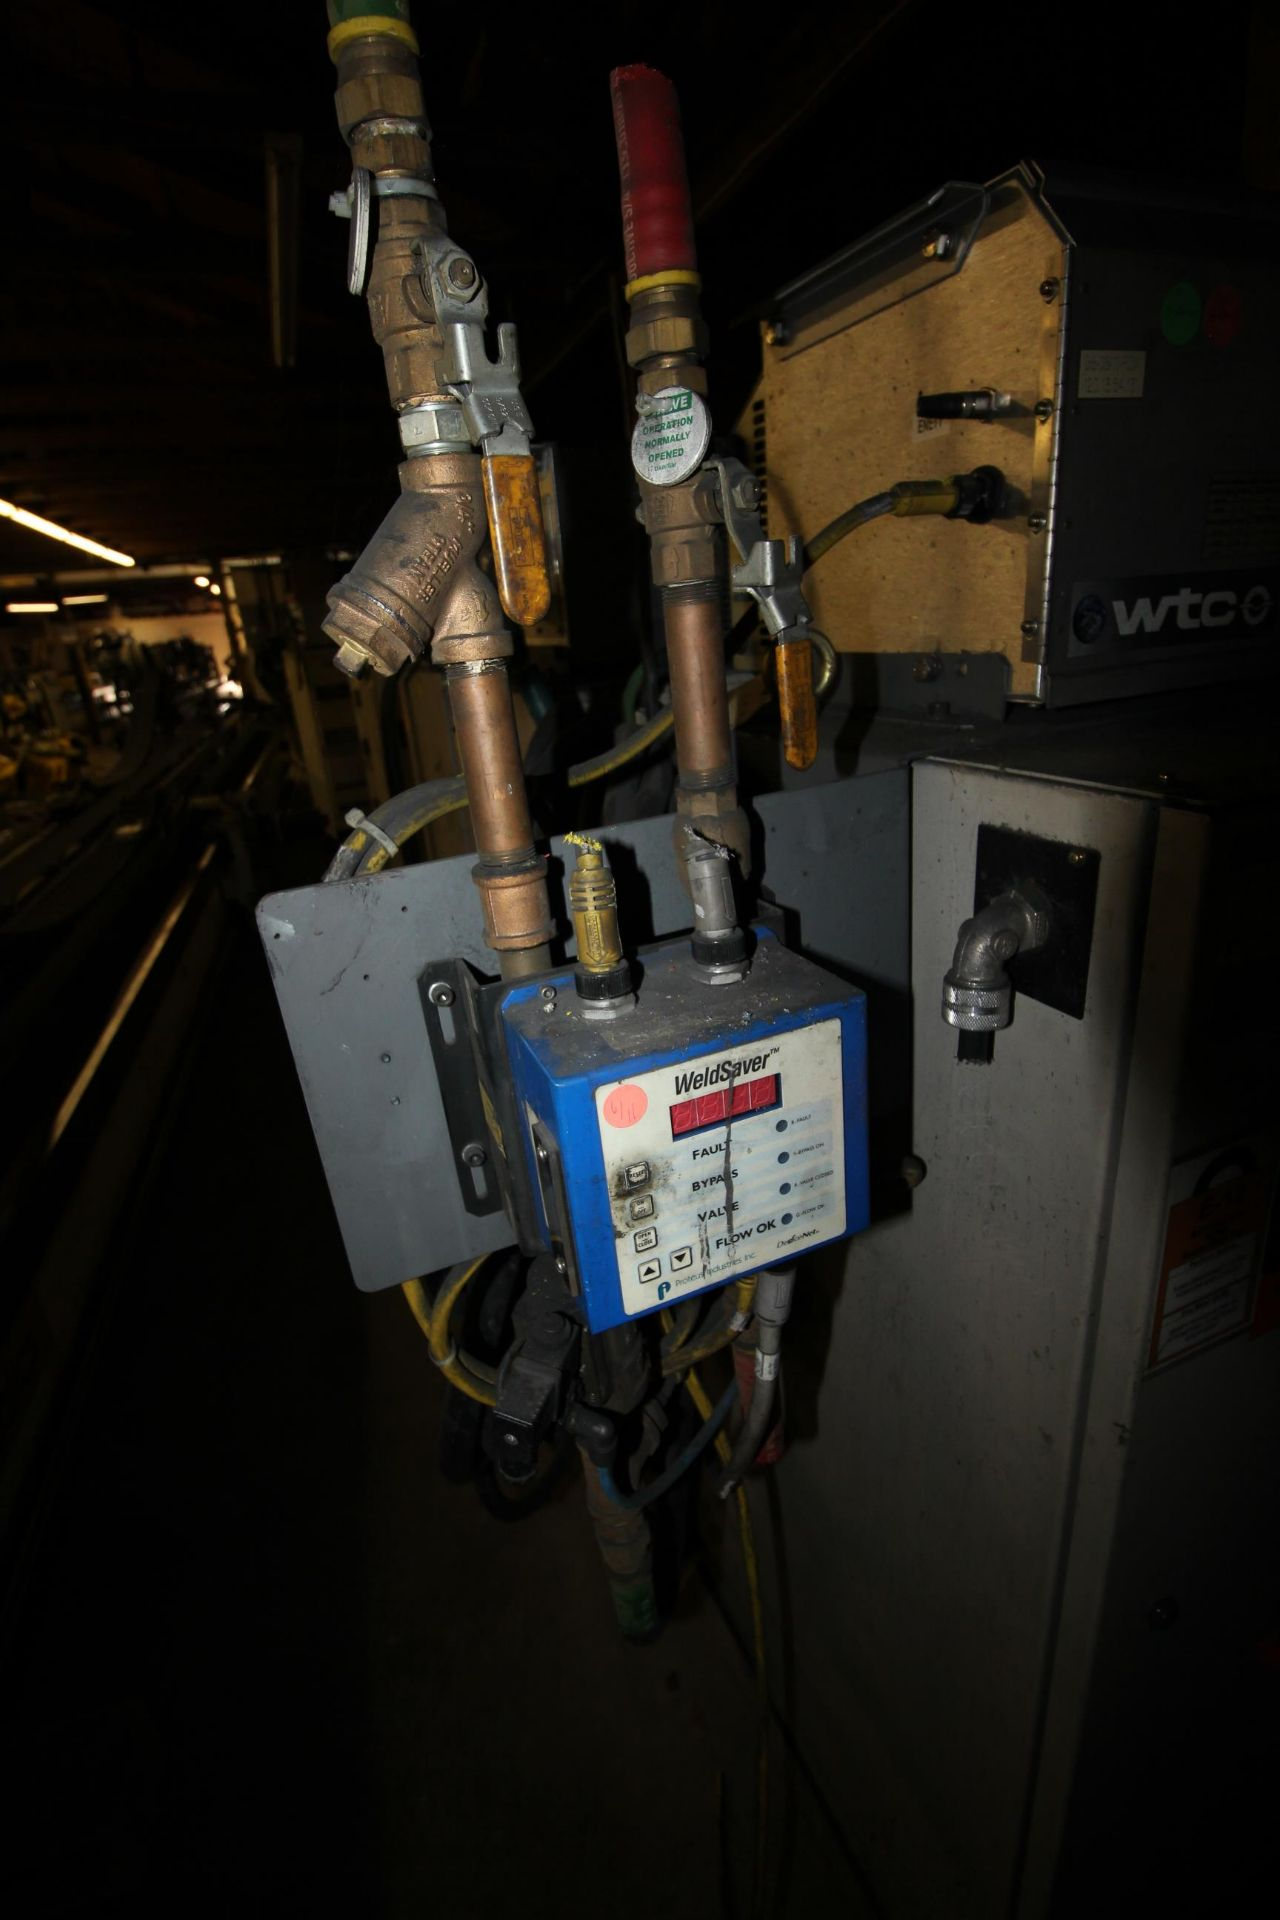 MOTOMAN ROBOT ES200N, NX100 CONTROL, SN S5M259-1-2, YEAR 2006, CABLES AND TEACH PENDANT - Image 10 of 11